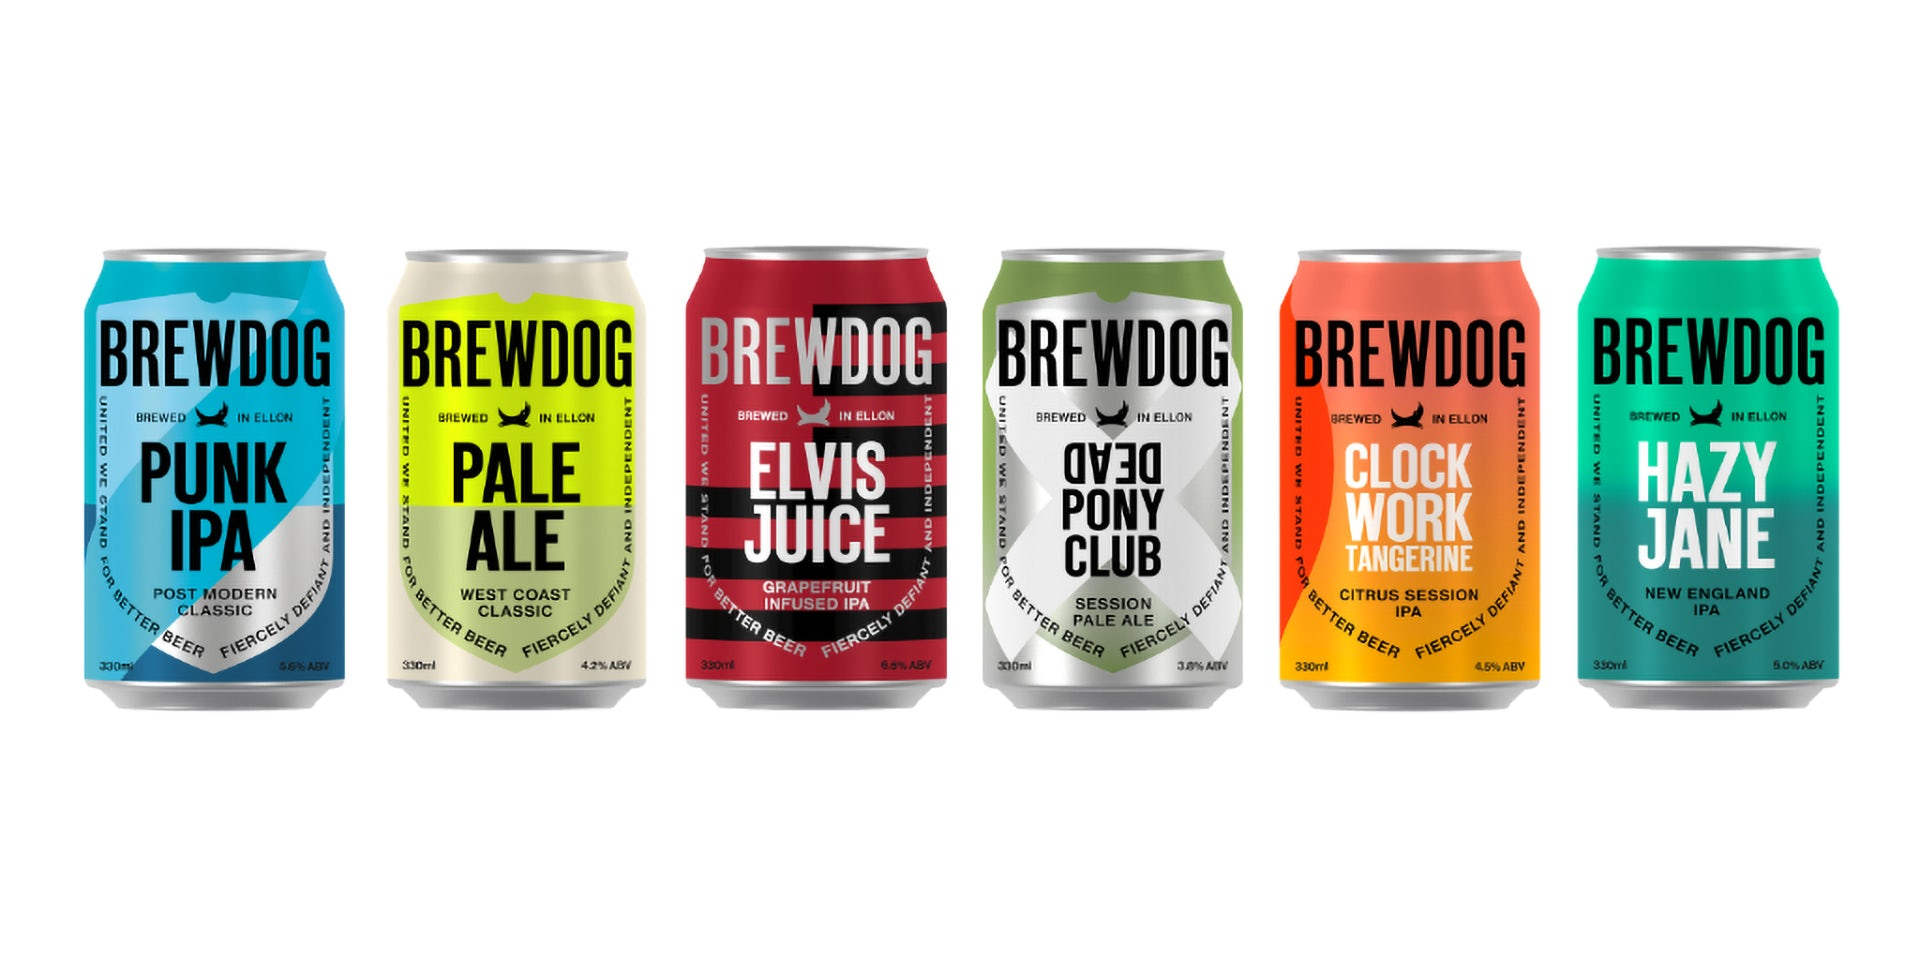 Brewdog Cleans Up Its Look With A Simplified Visual Identity